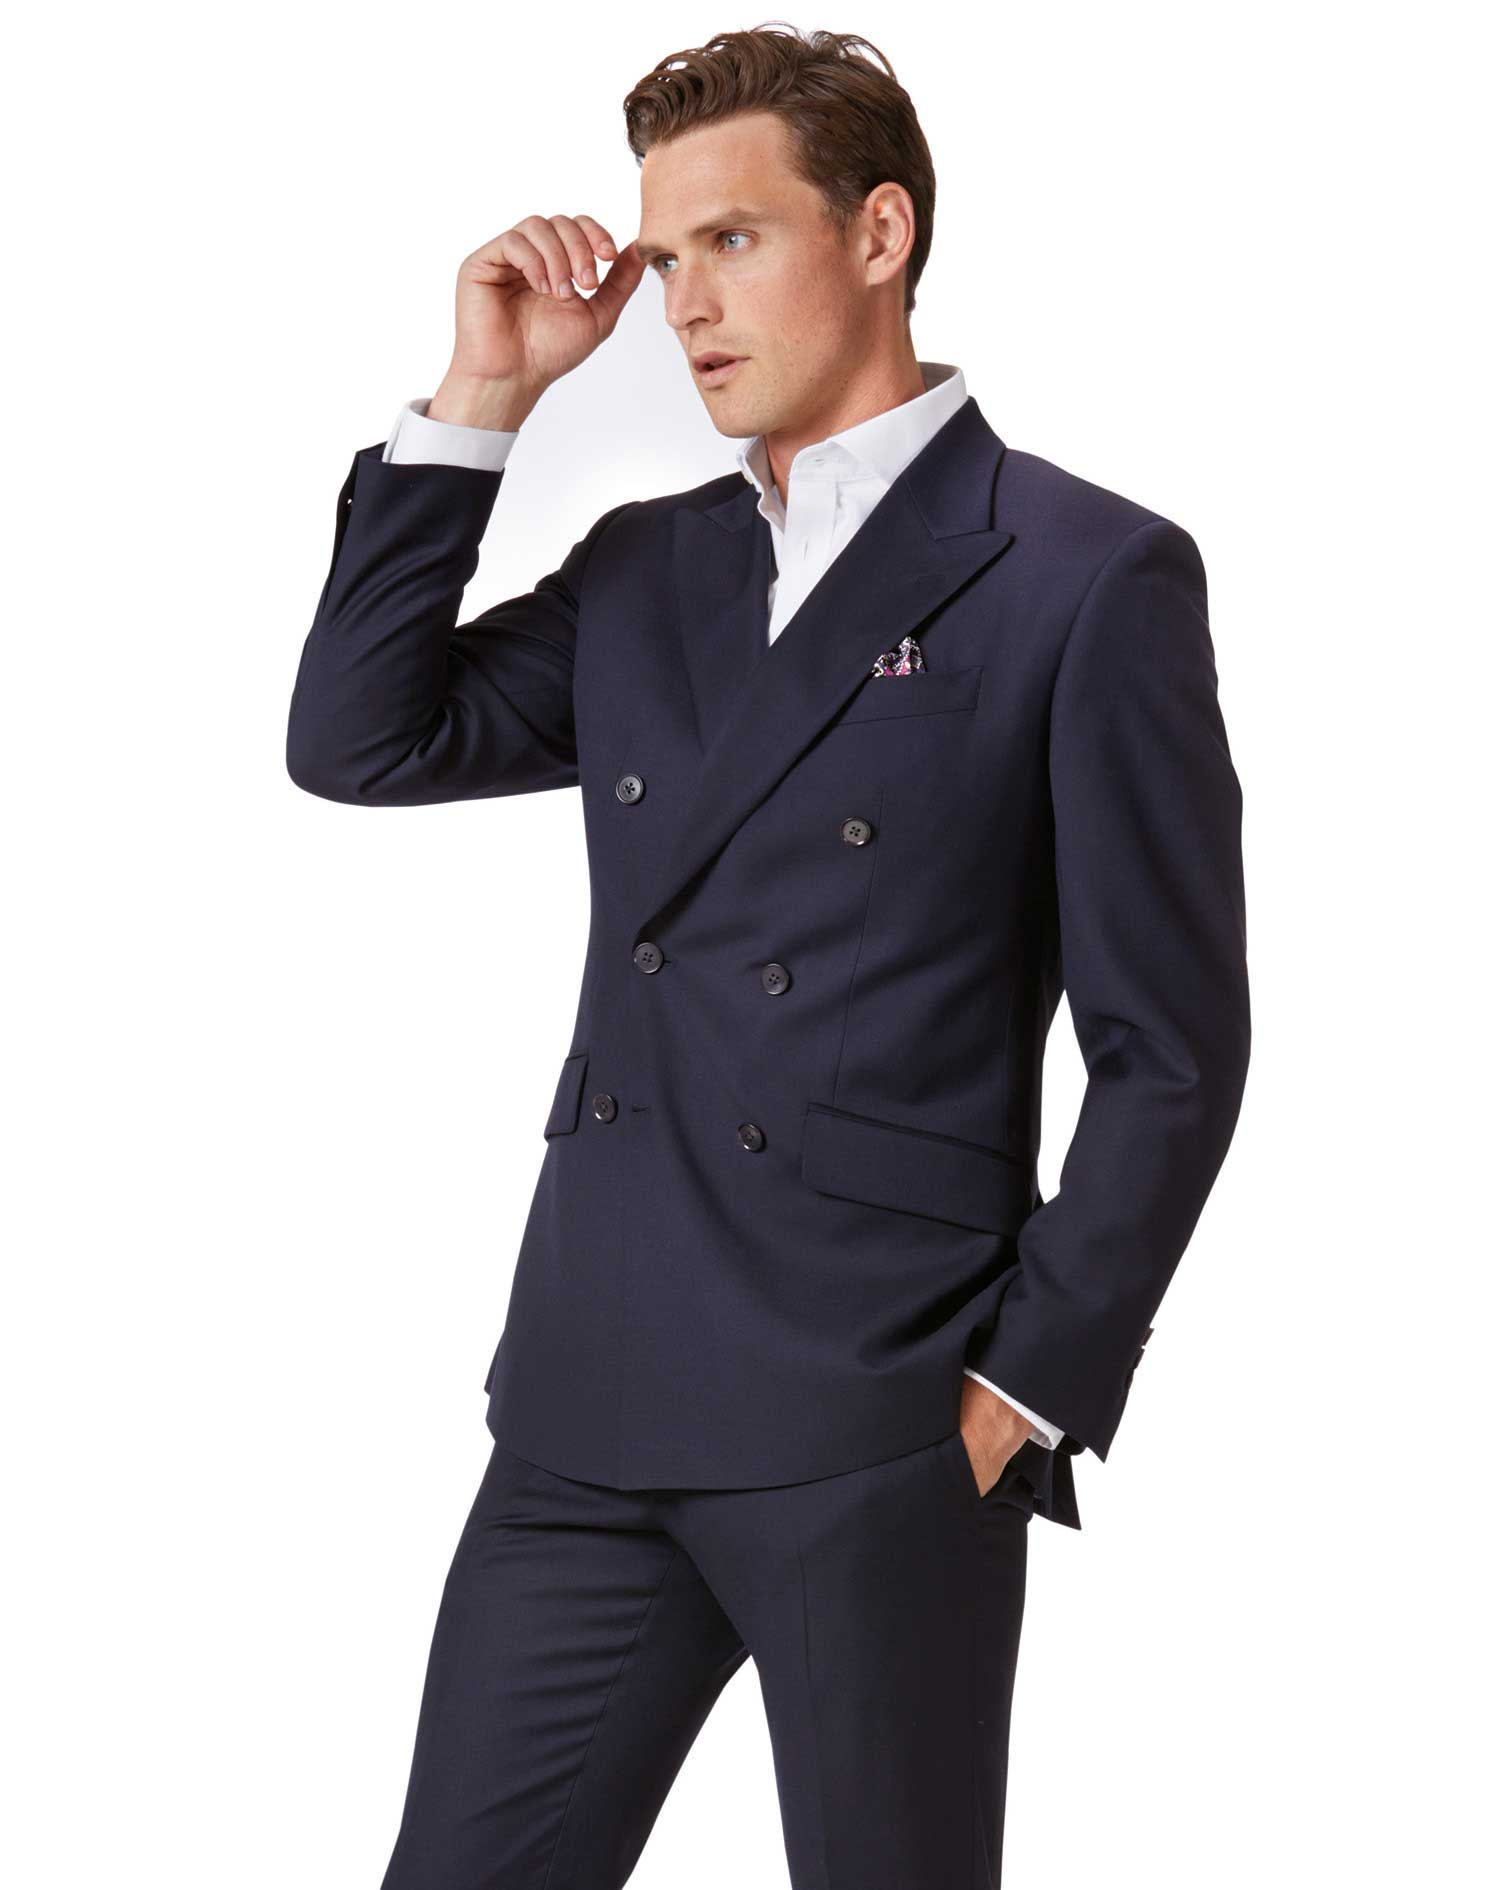 Navy Slim Fit Double Breasted Twill Business Suit Wool Jacket Size 42 Short by Charles Tyrwhitt